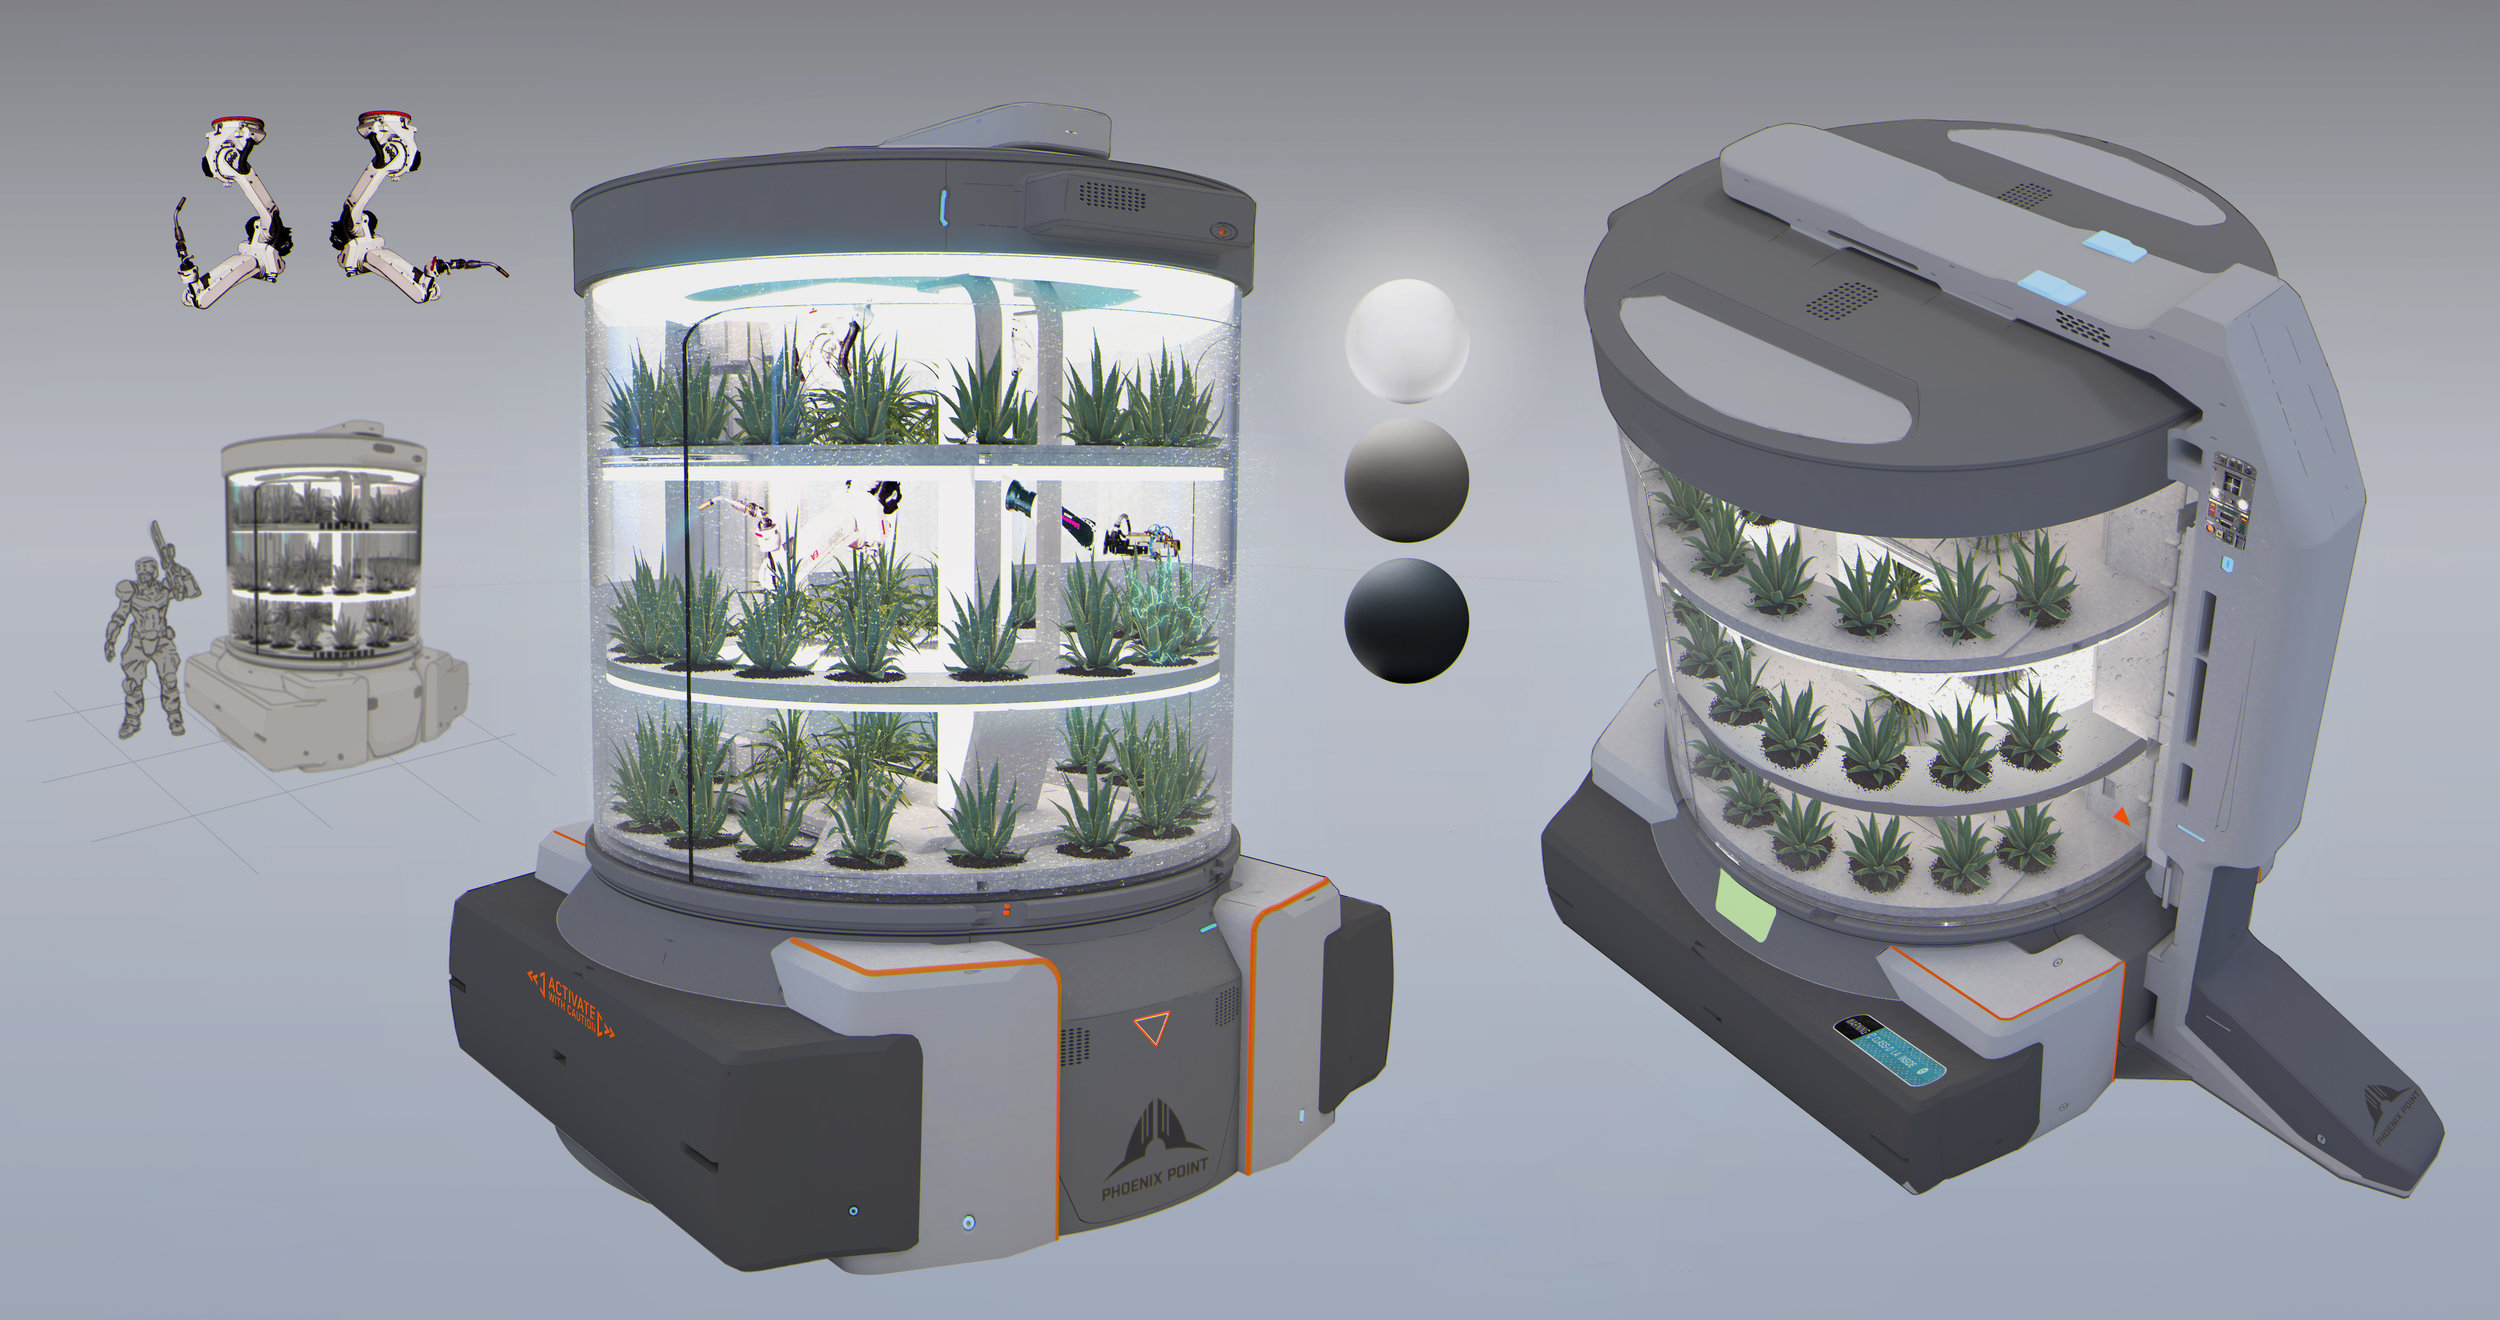 Another hydro vegetation chamber concept